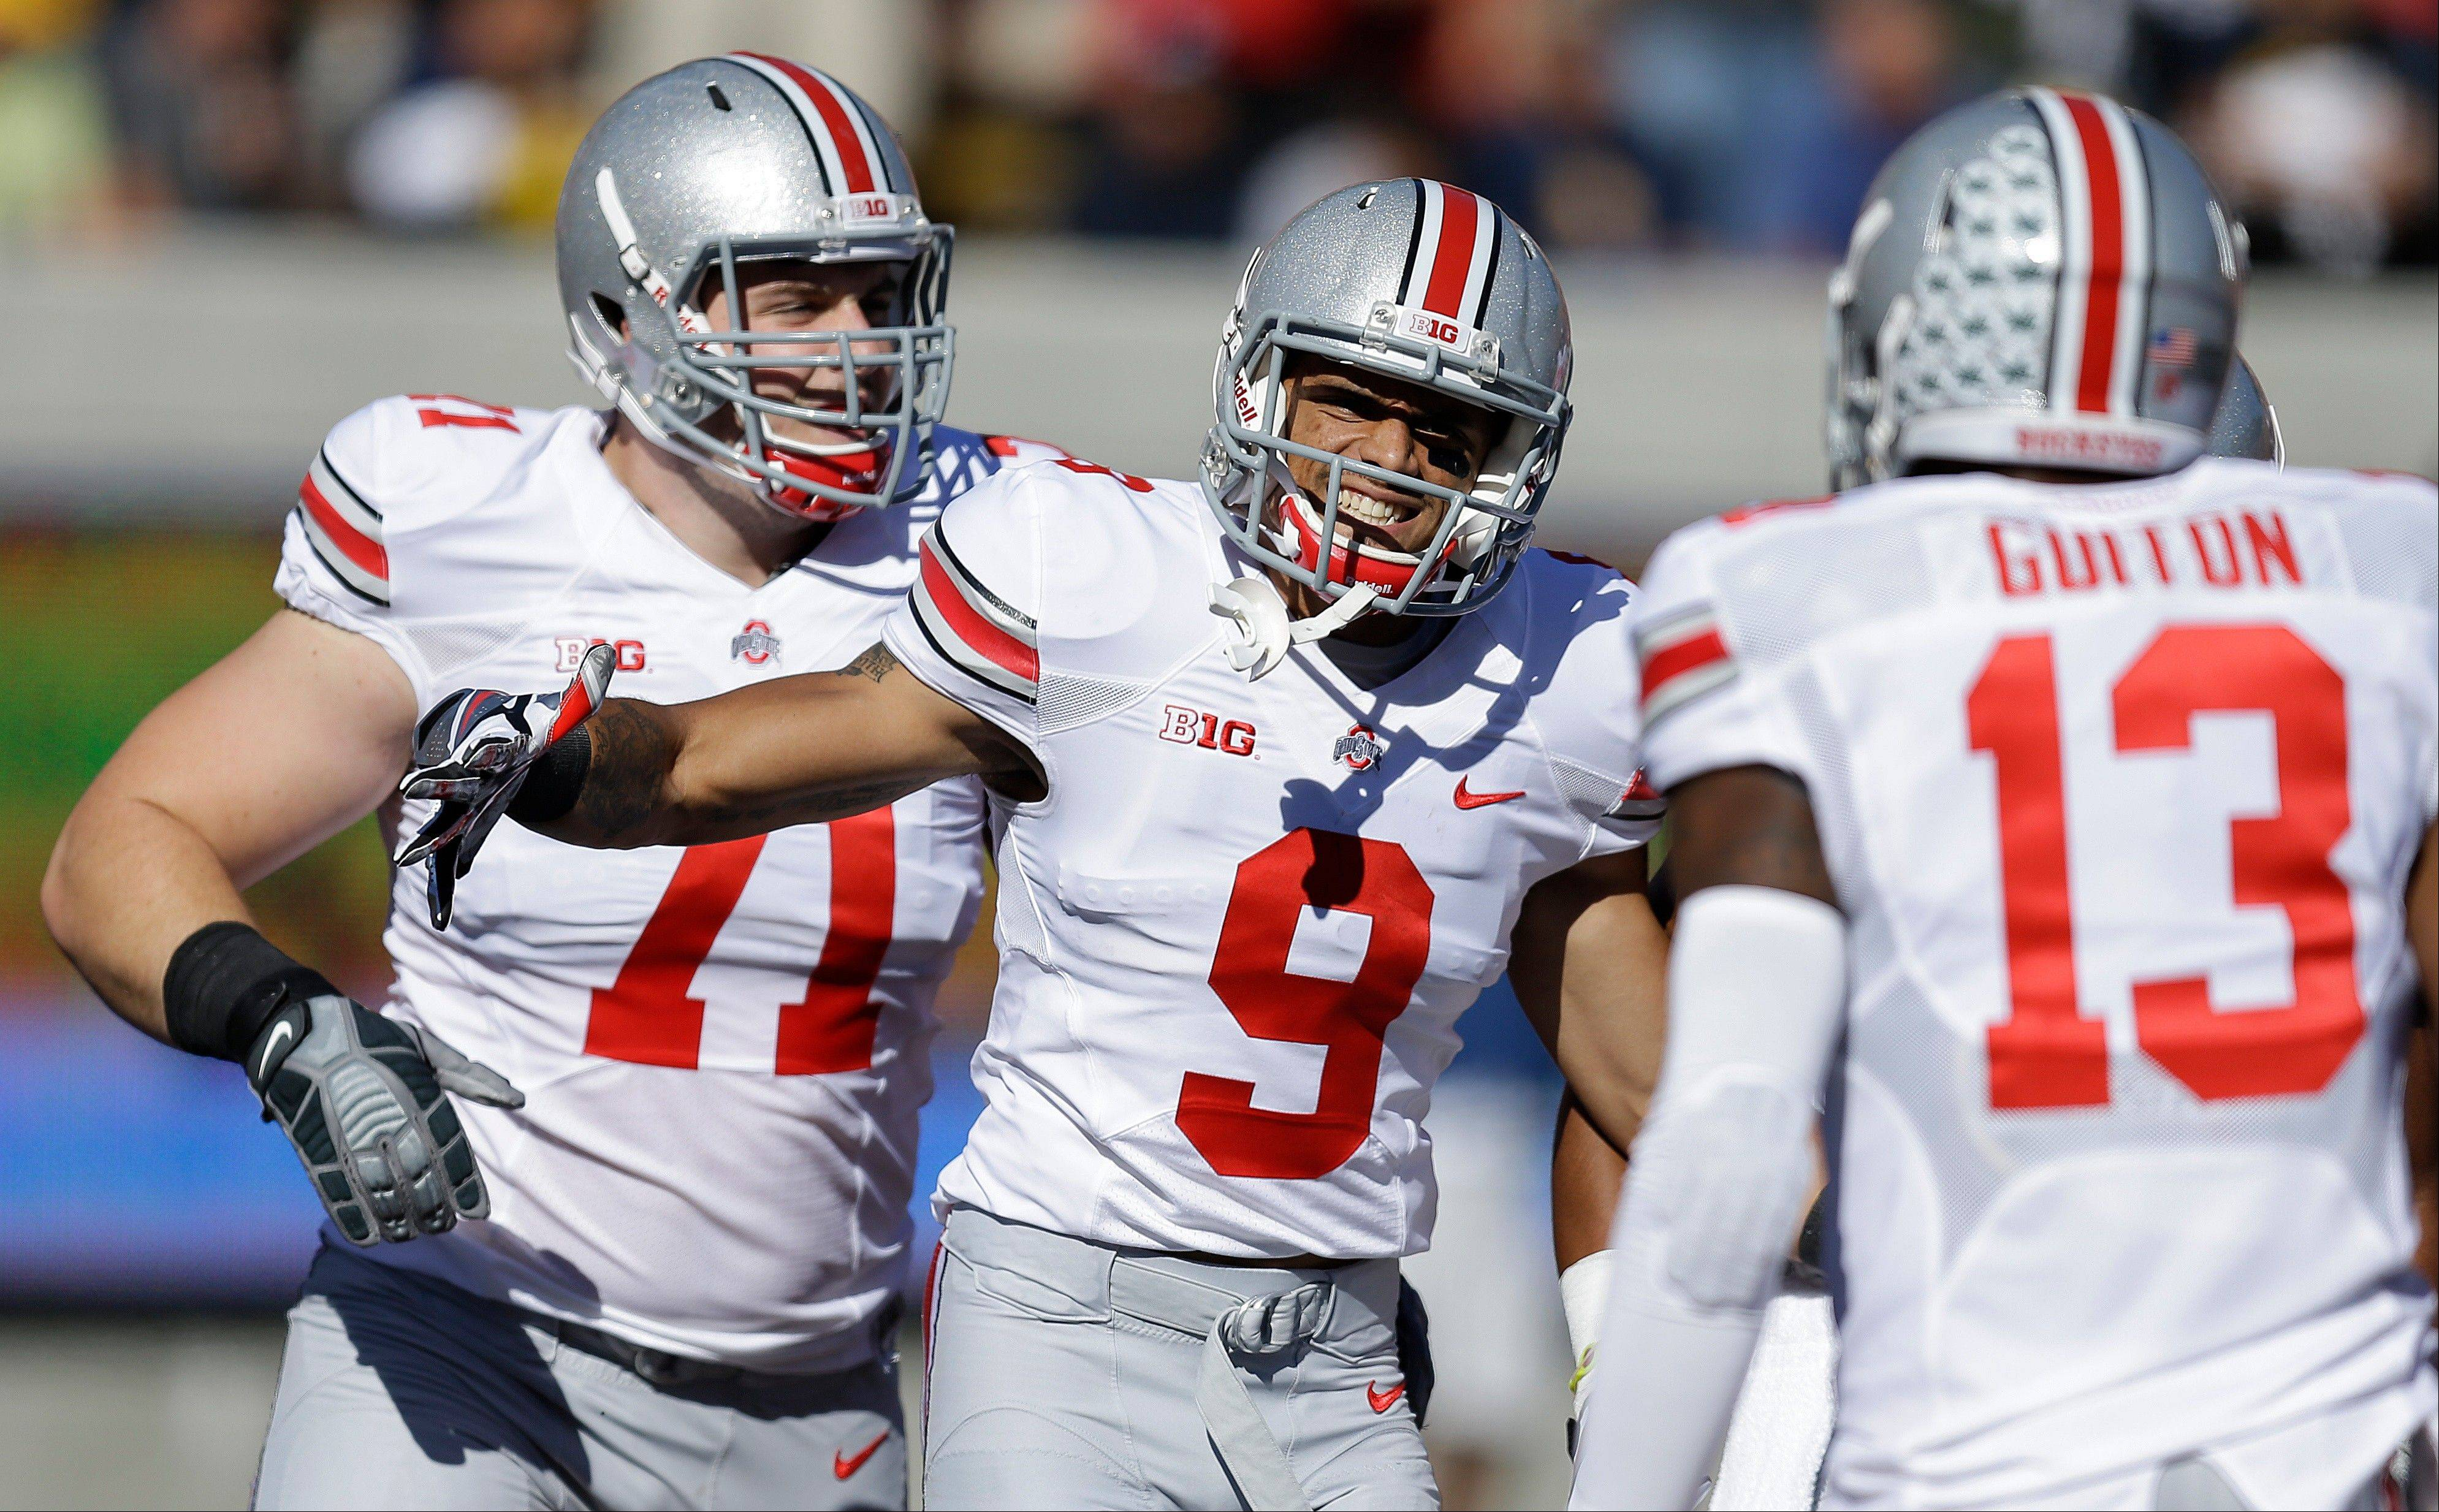 Ohio State�s Devin Smith (9) celebrates with quarterback Kenny Guiton (13) and Corey Linsley (71) after Smith scored a touchdown against California during the first quarter of an NCAA college football game, Saturday, Sept. 14, 2013, in Berkeley, Calif.